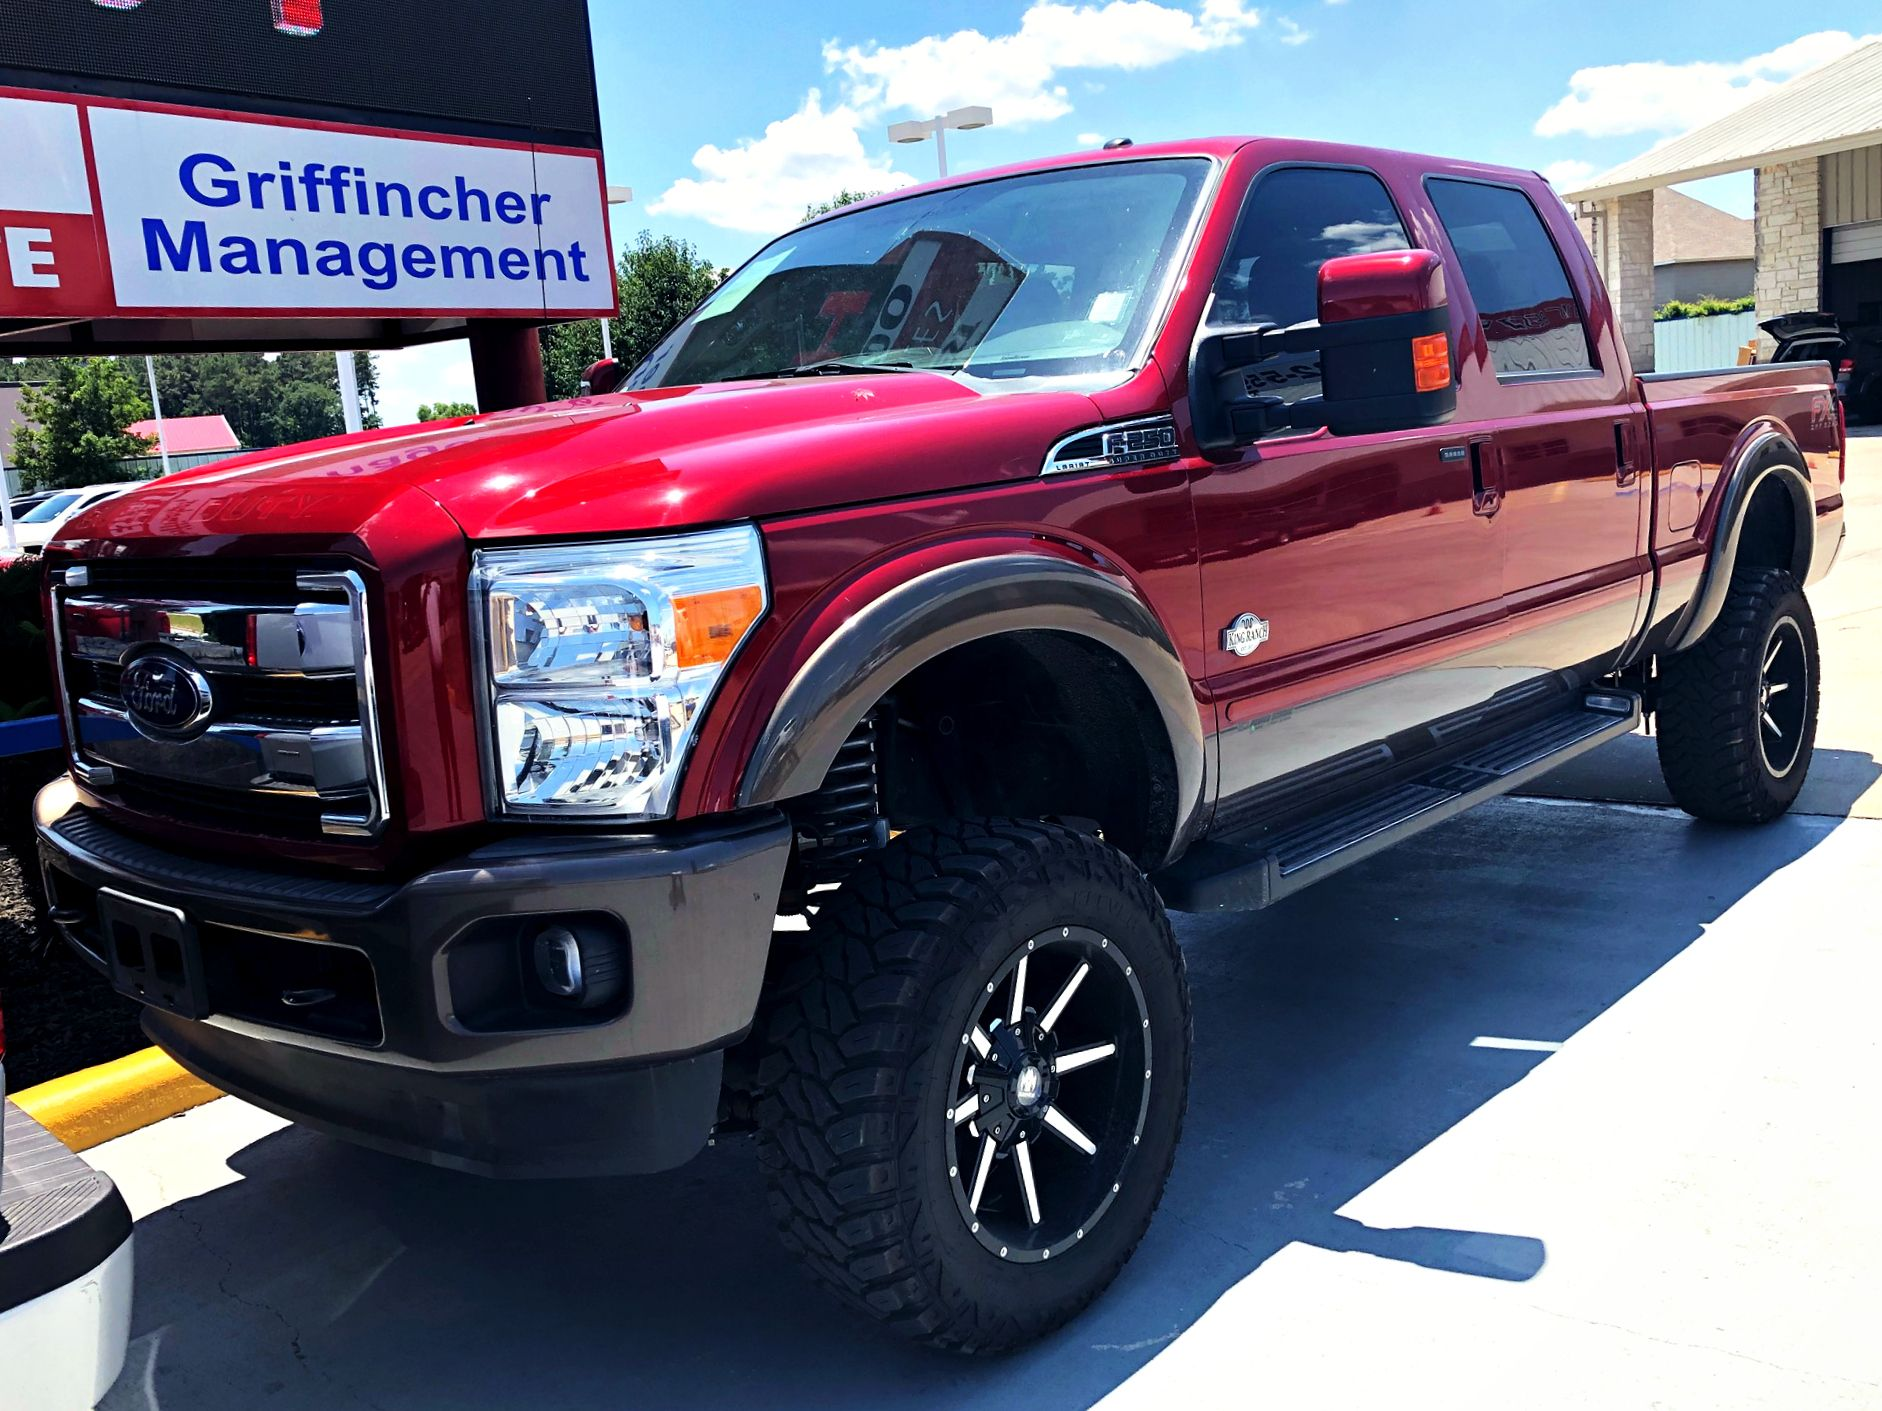 Come Test Drive Today 2015 Ford F 250 King Ranch For Sale At Fincher S Texas Best Located In Tomball Tx Call Now To Set Up A Te Ford Ford King Ranch F250